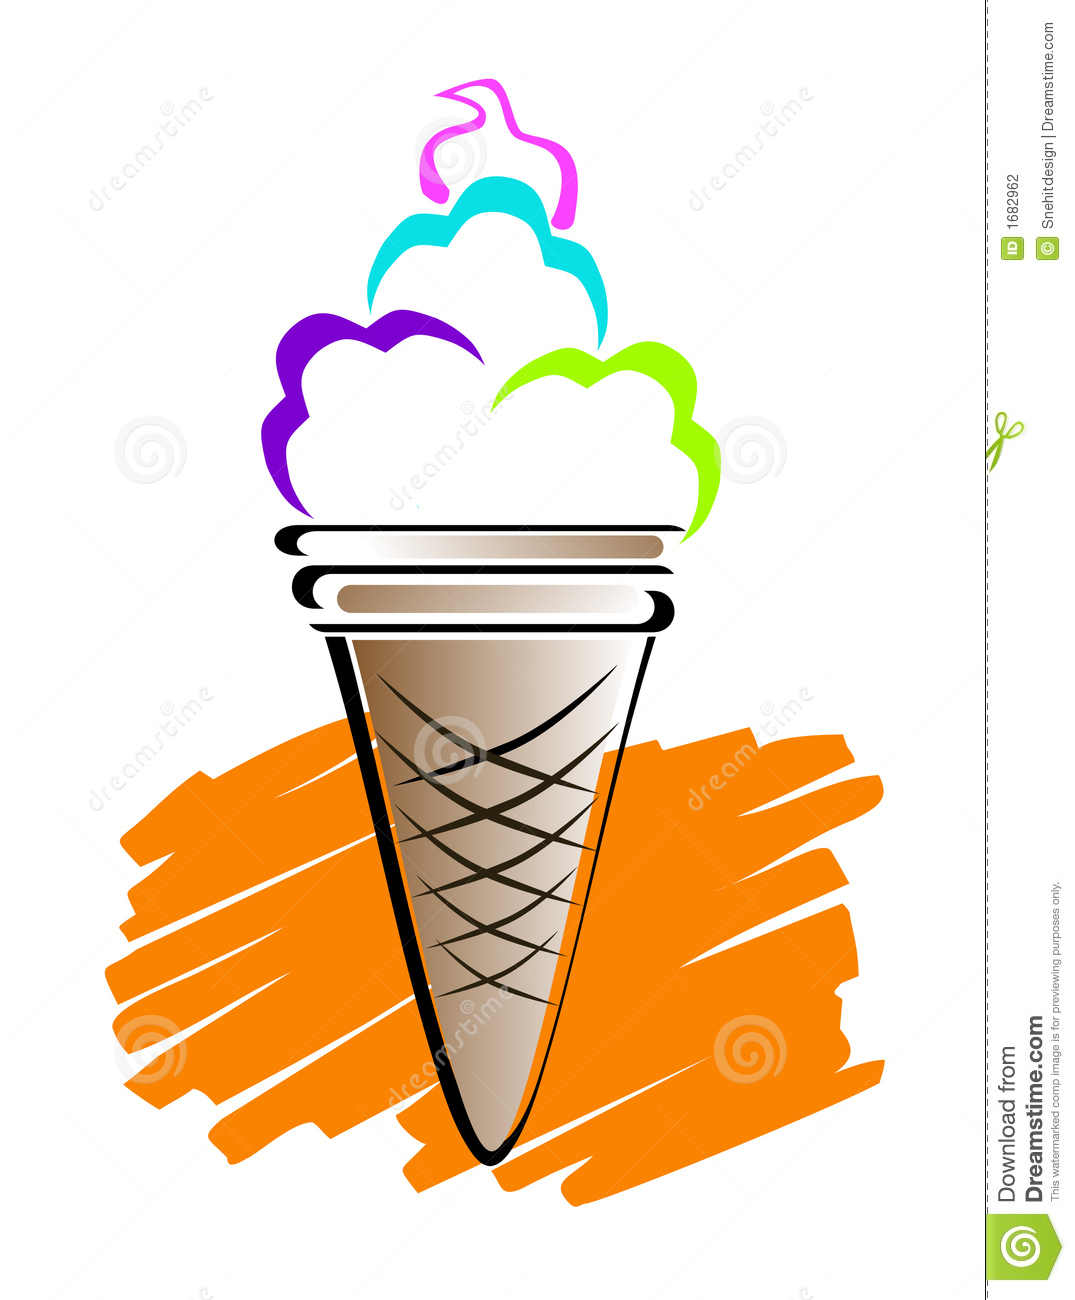 Line Art Ice Cream : Ice cream art royalty free cartoon cartoondealer